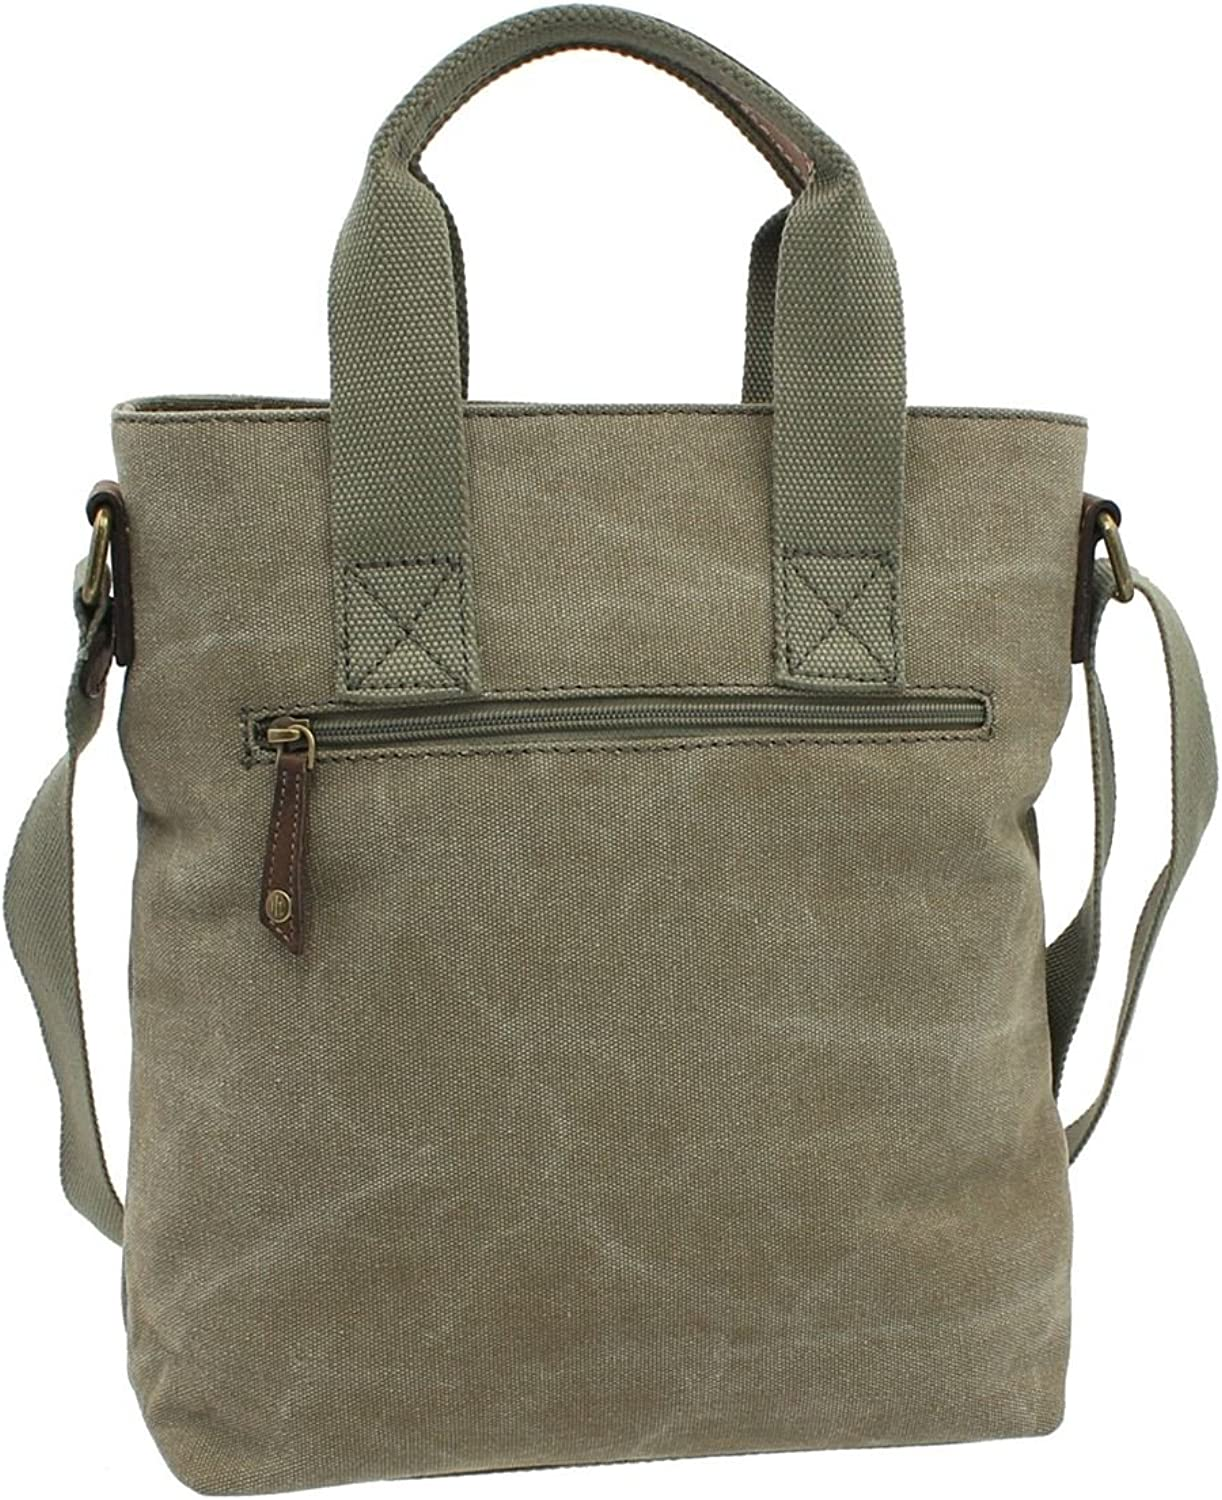 CACTUS Canvas and Distressed Oiled Leather Grab/Cross Body Bag CL811_81 Khaki